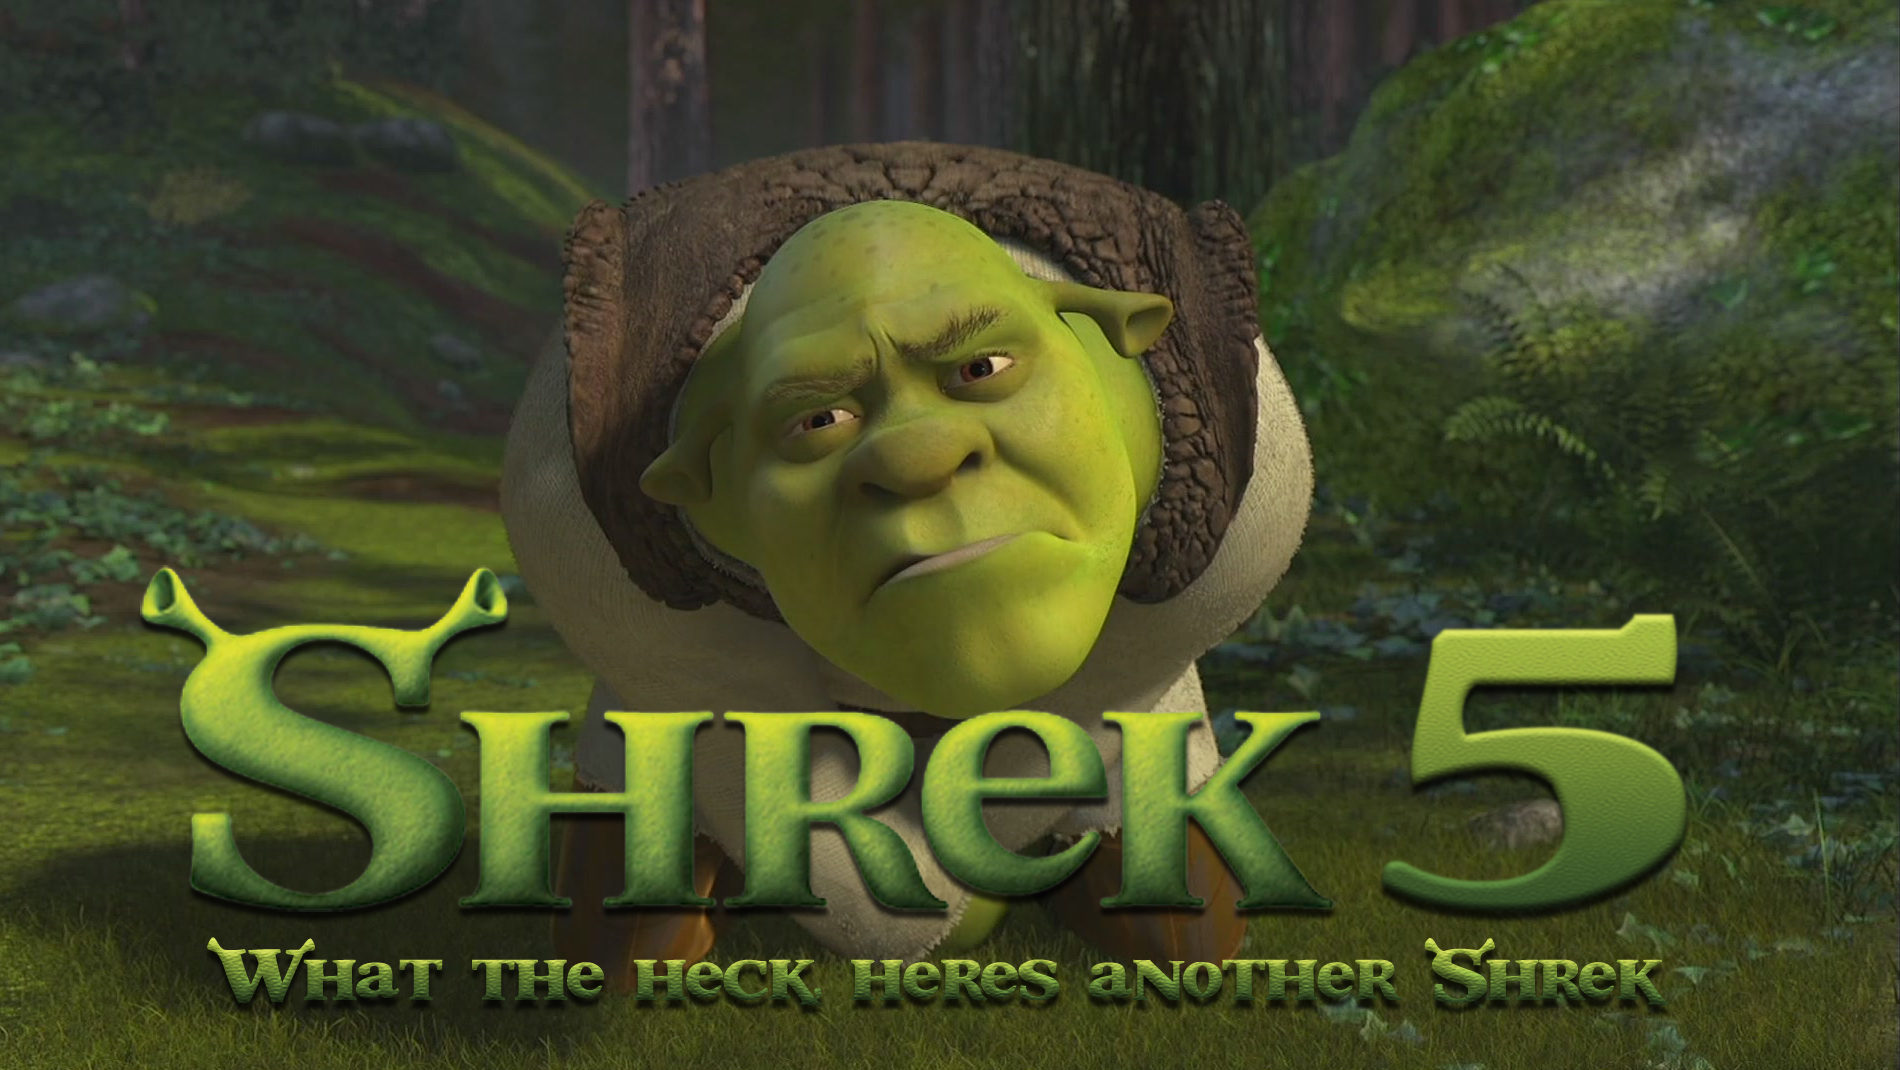 Shrek 5 Plot Details